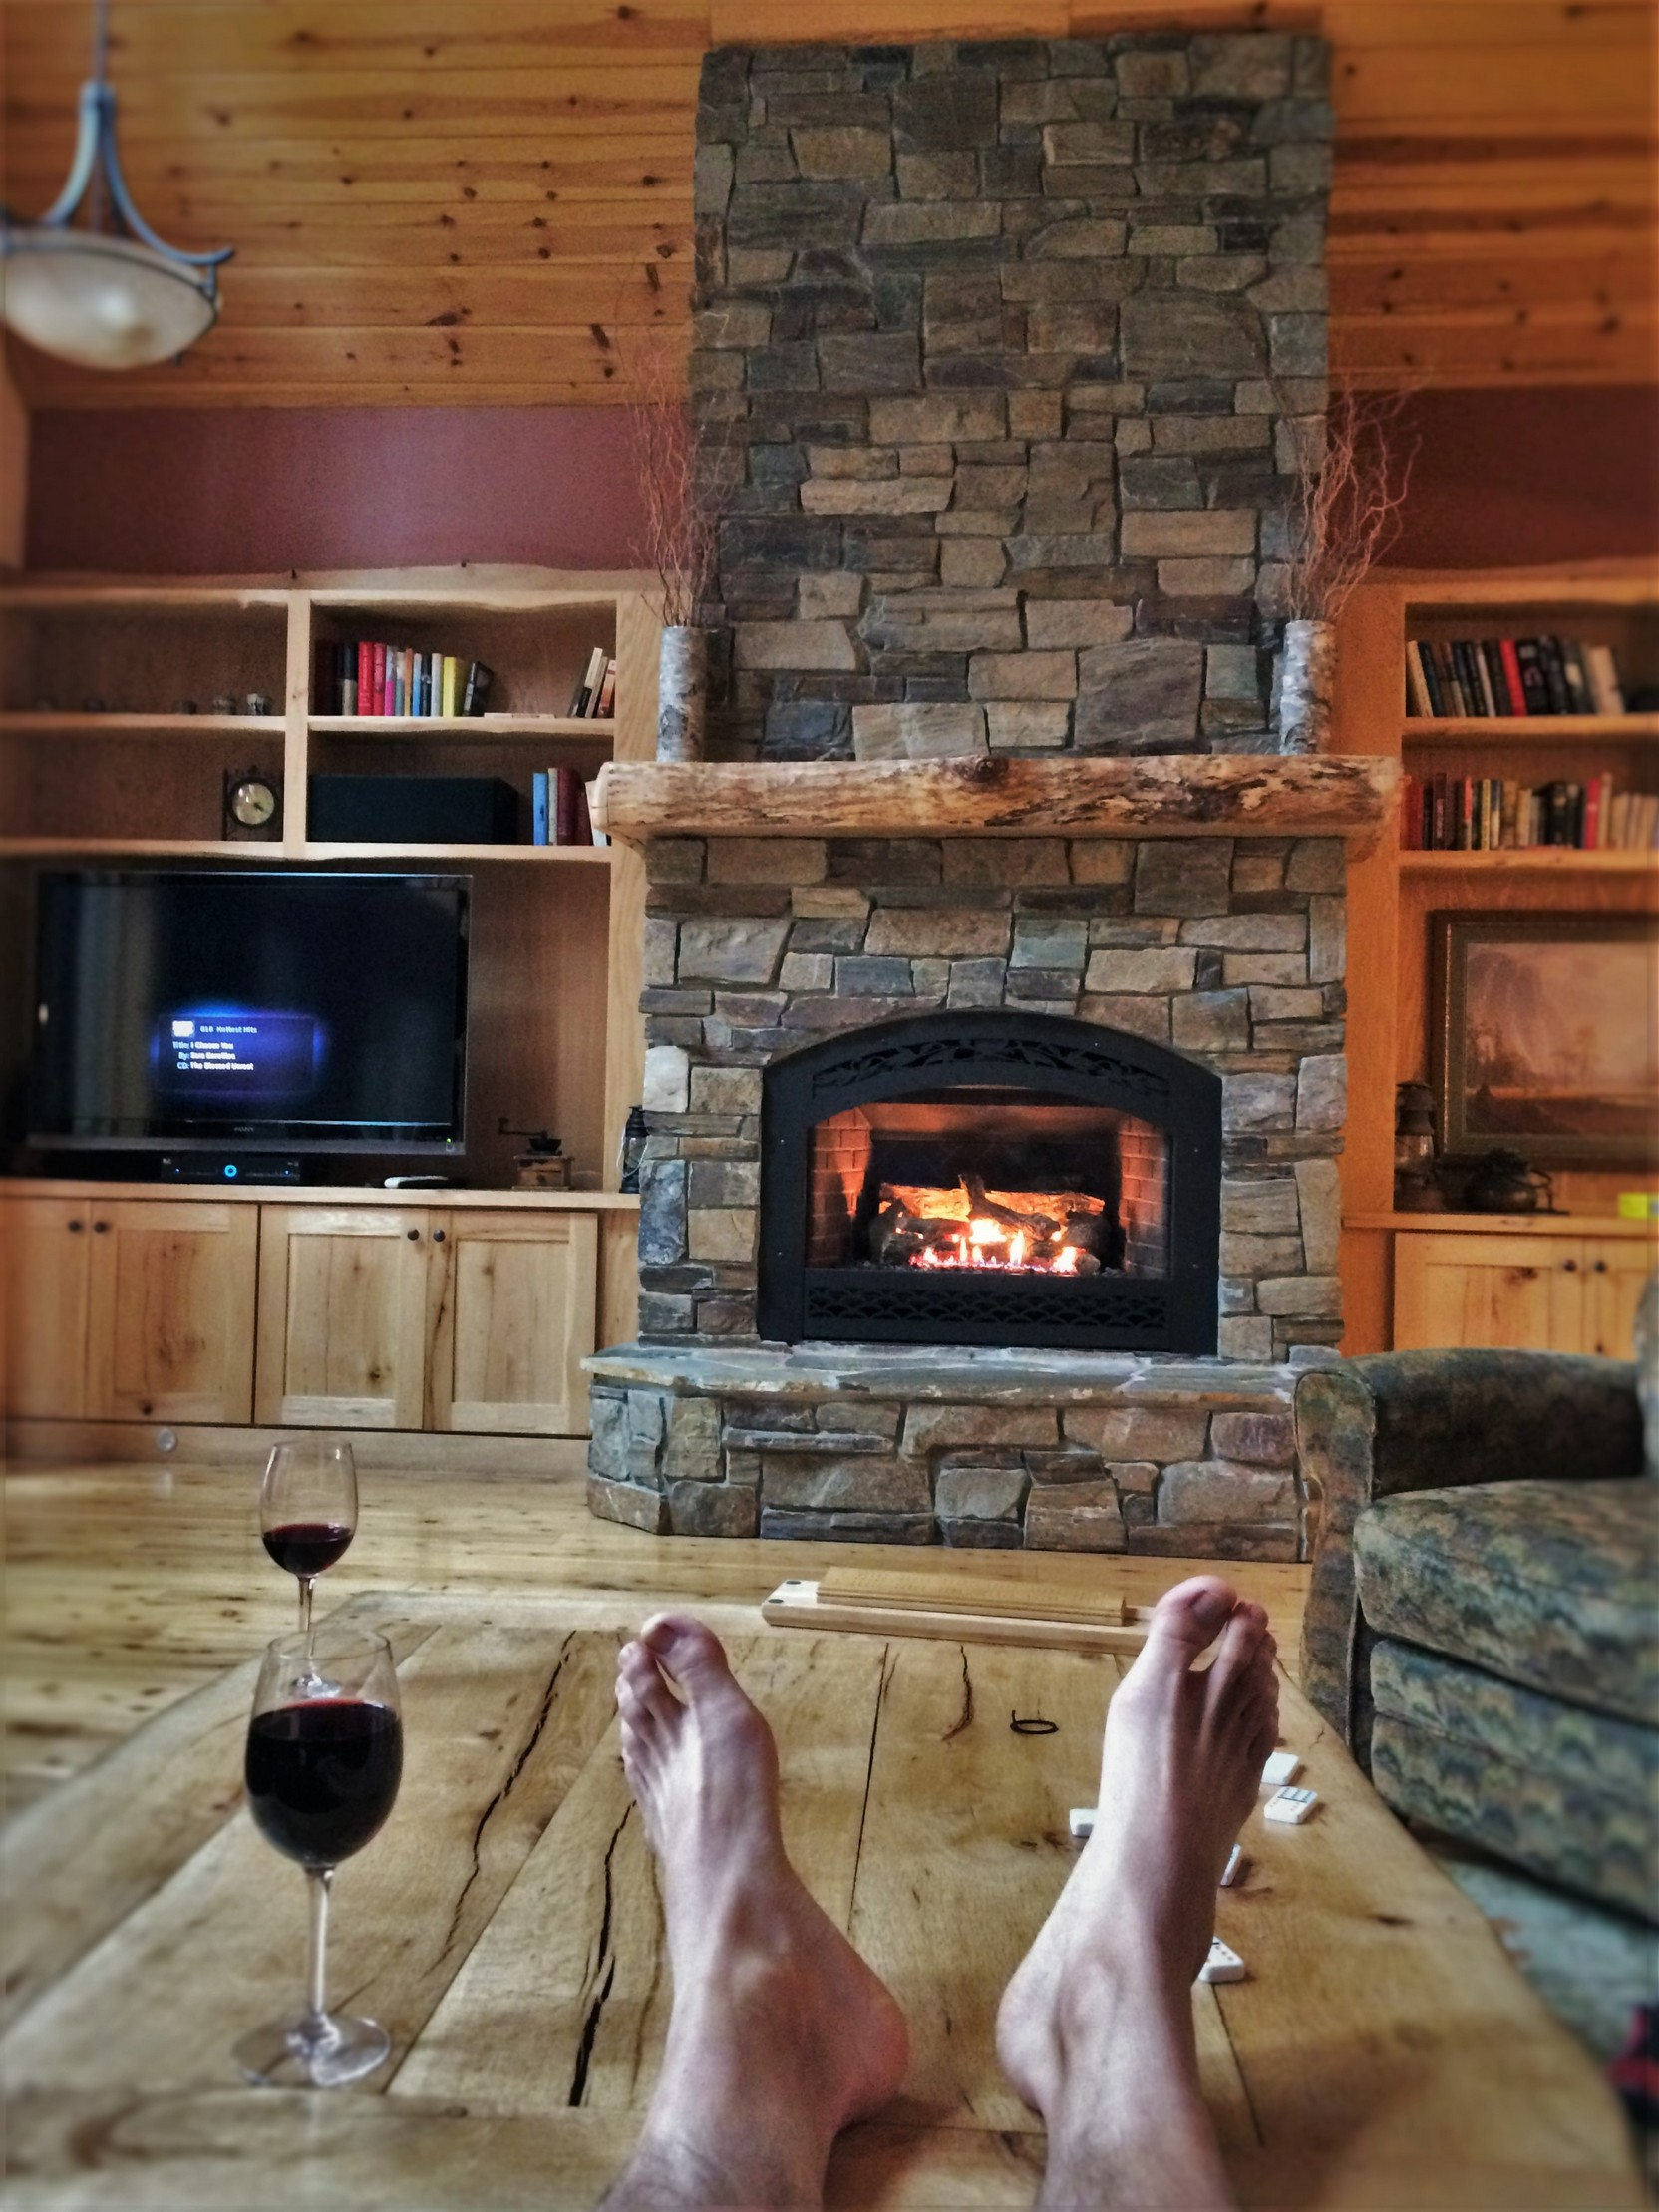 rob taylor feet and wine with stone fireplace in john muir house